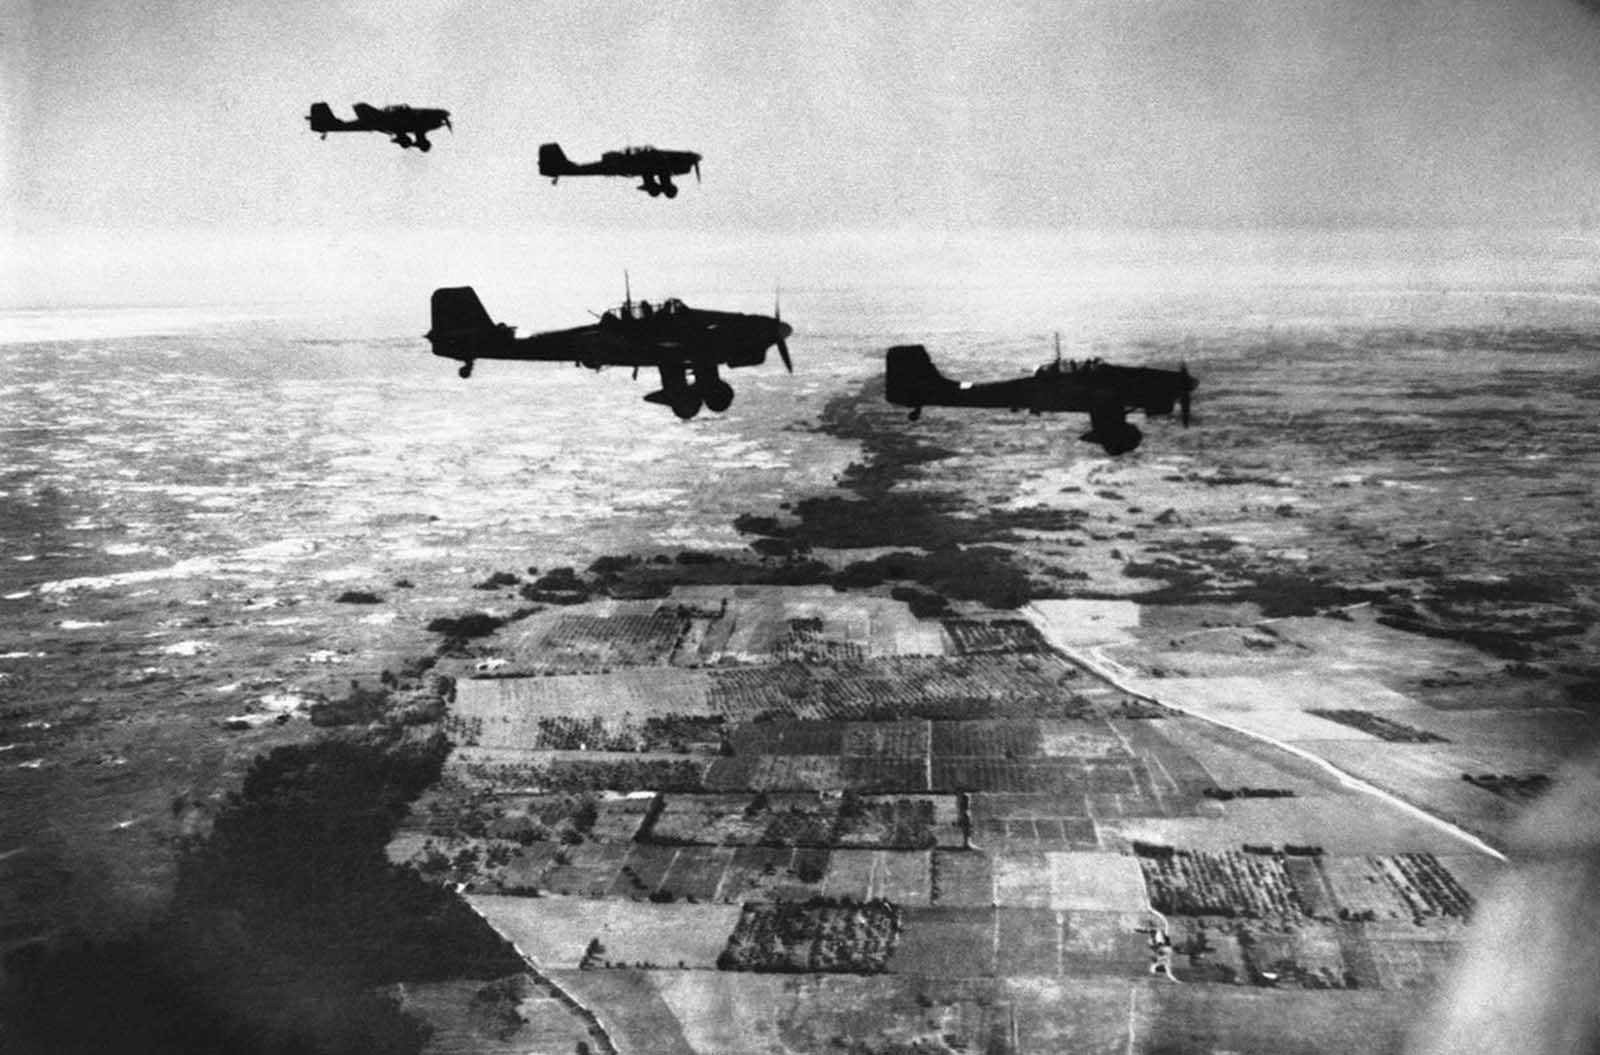 German Stuka dive-bombers, in flight heading towards their target over coastal territory between Dniepr and Crimea, towards the Gate of the Crimea on November 6, 1941.